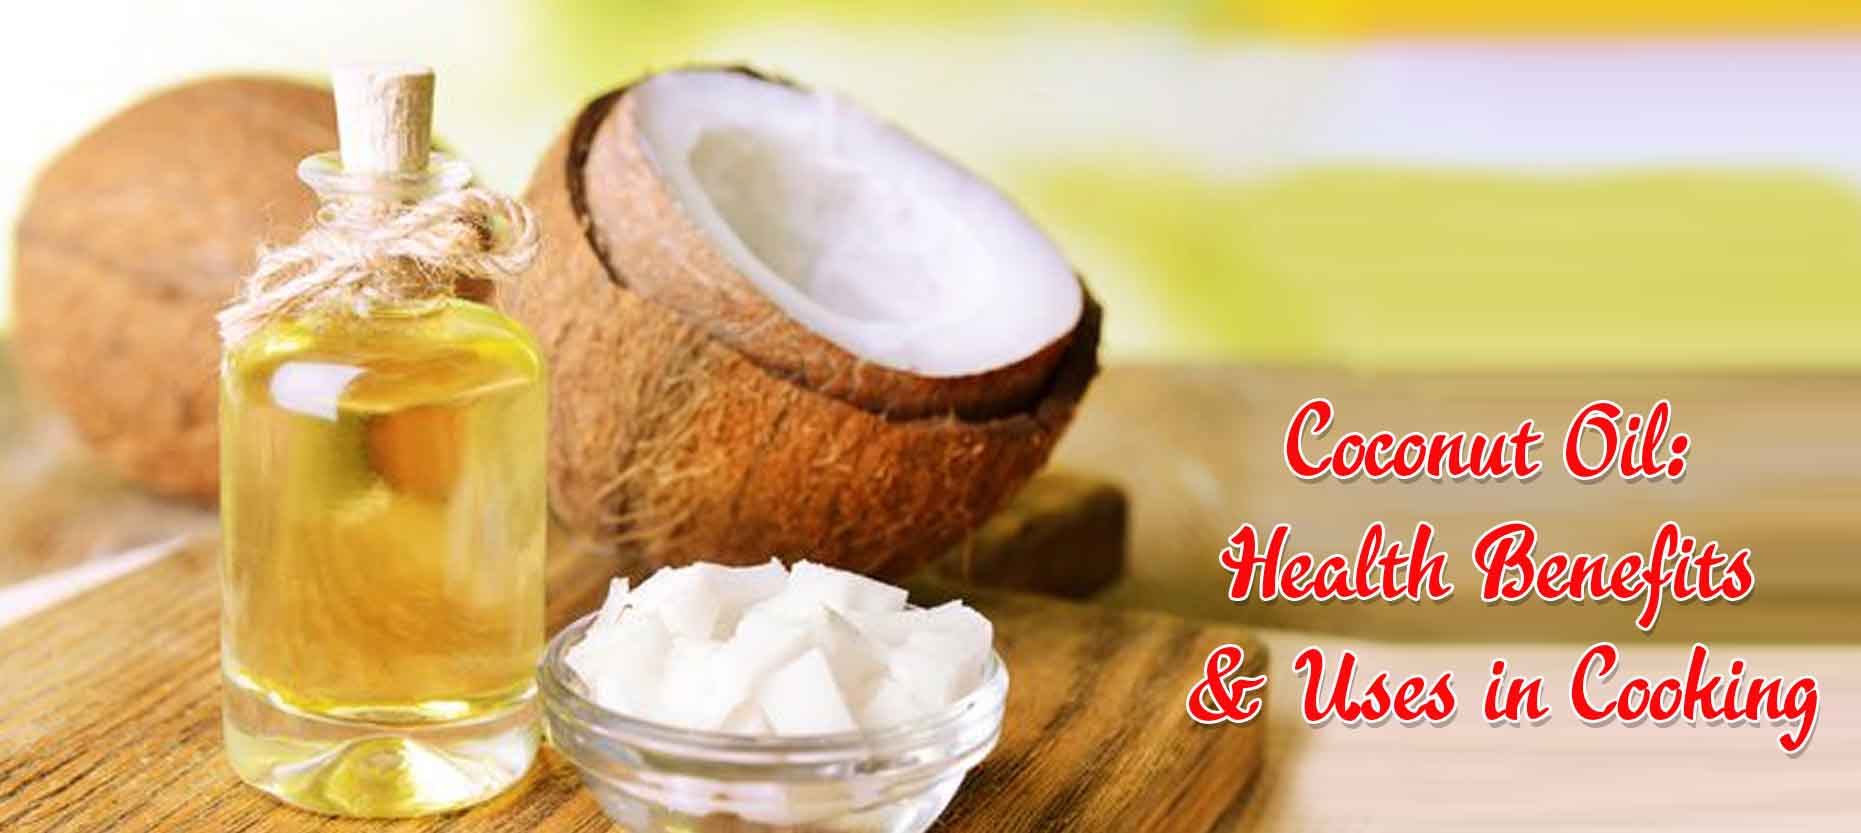 Coconut Oil: Health Benefits & Uses in Cooking